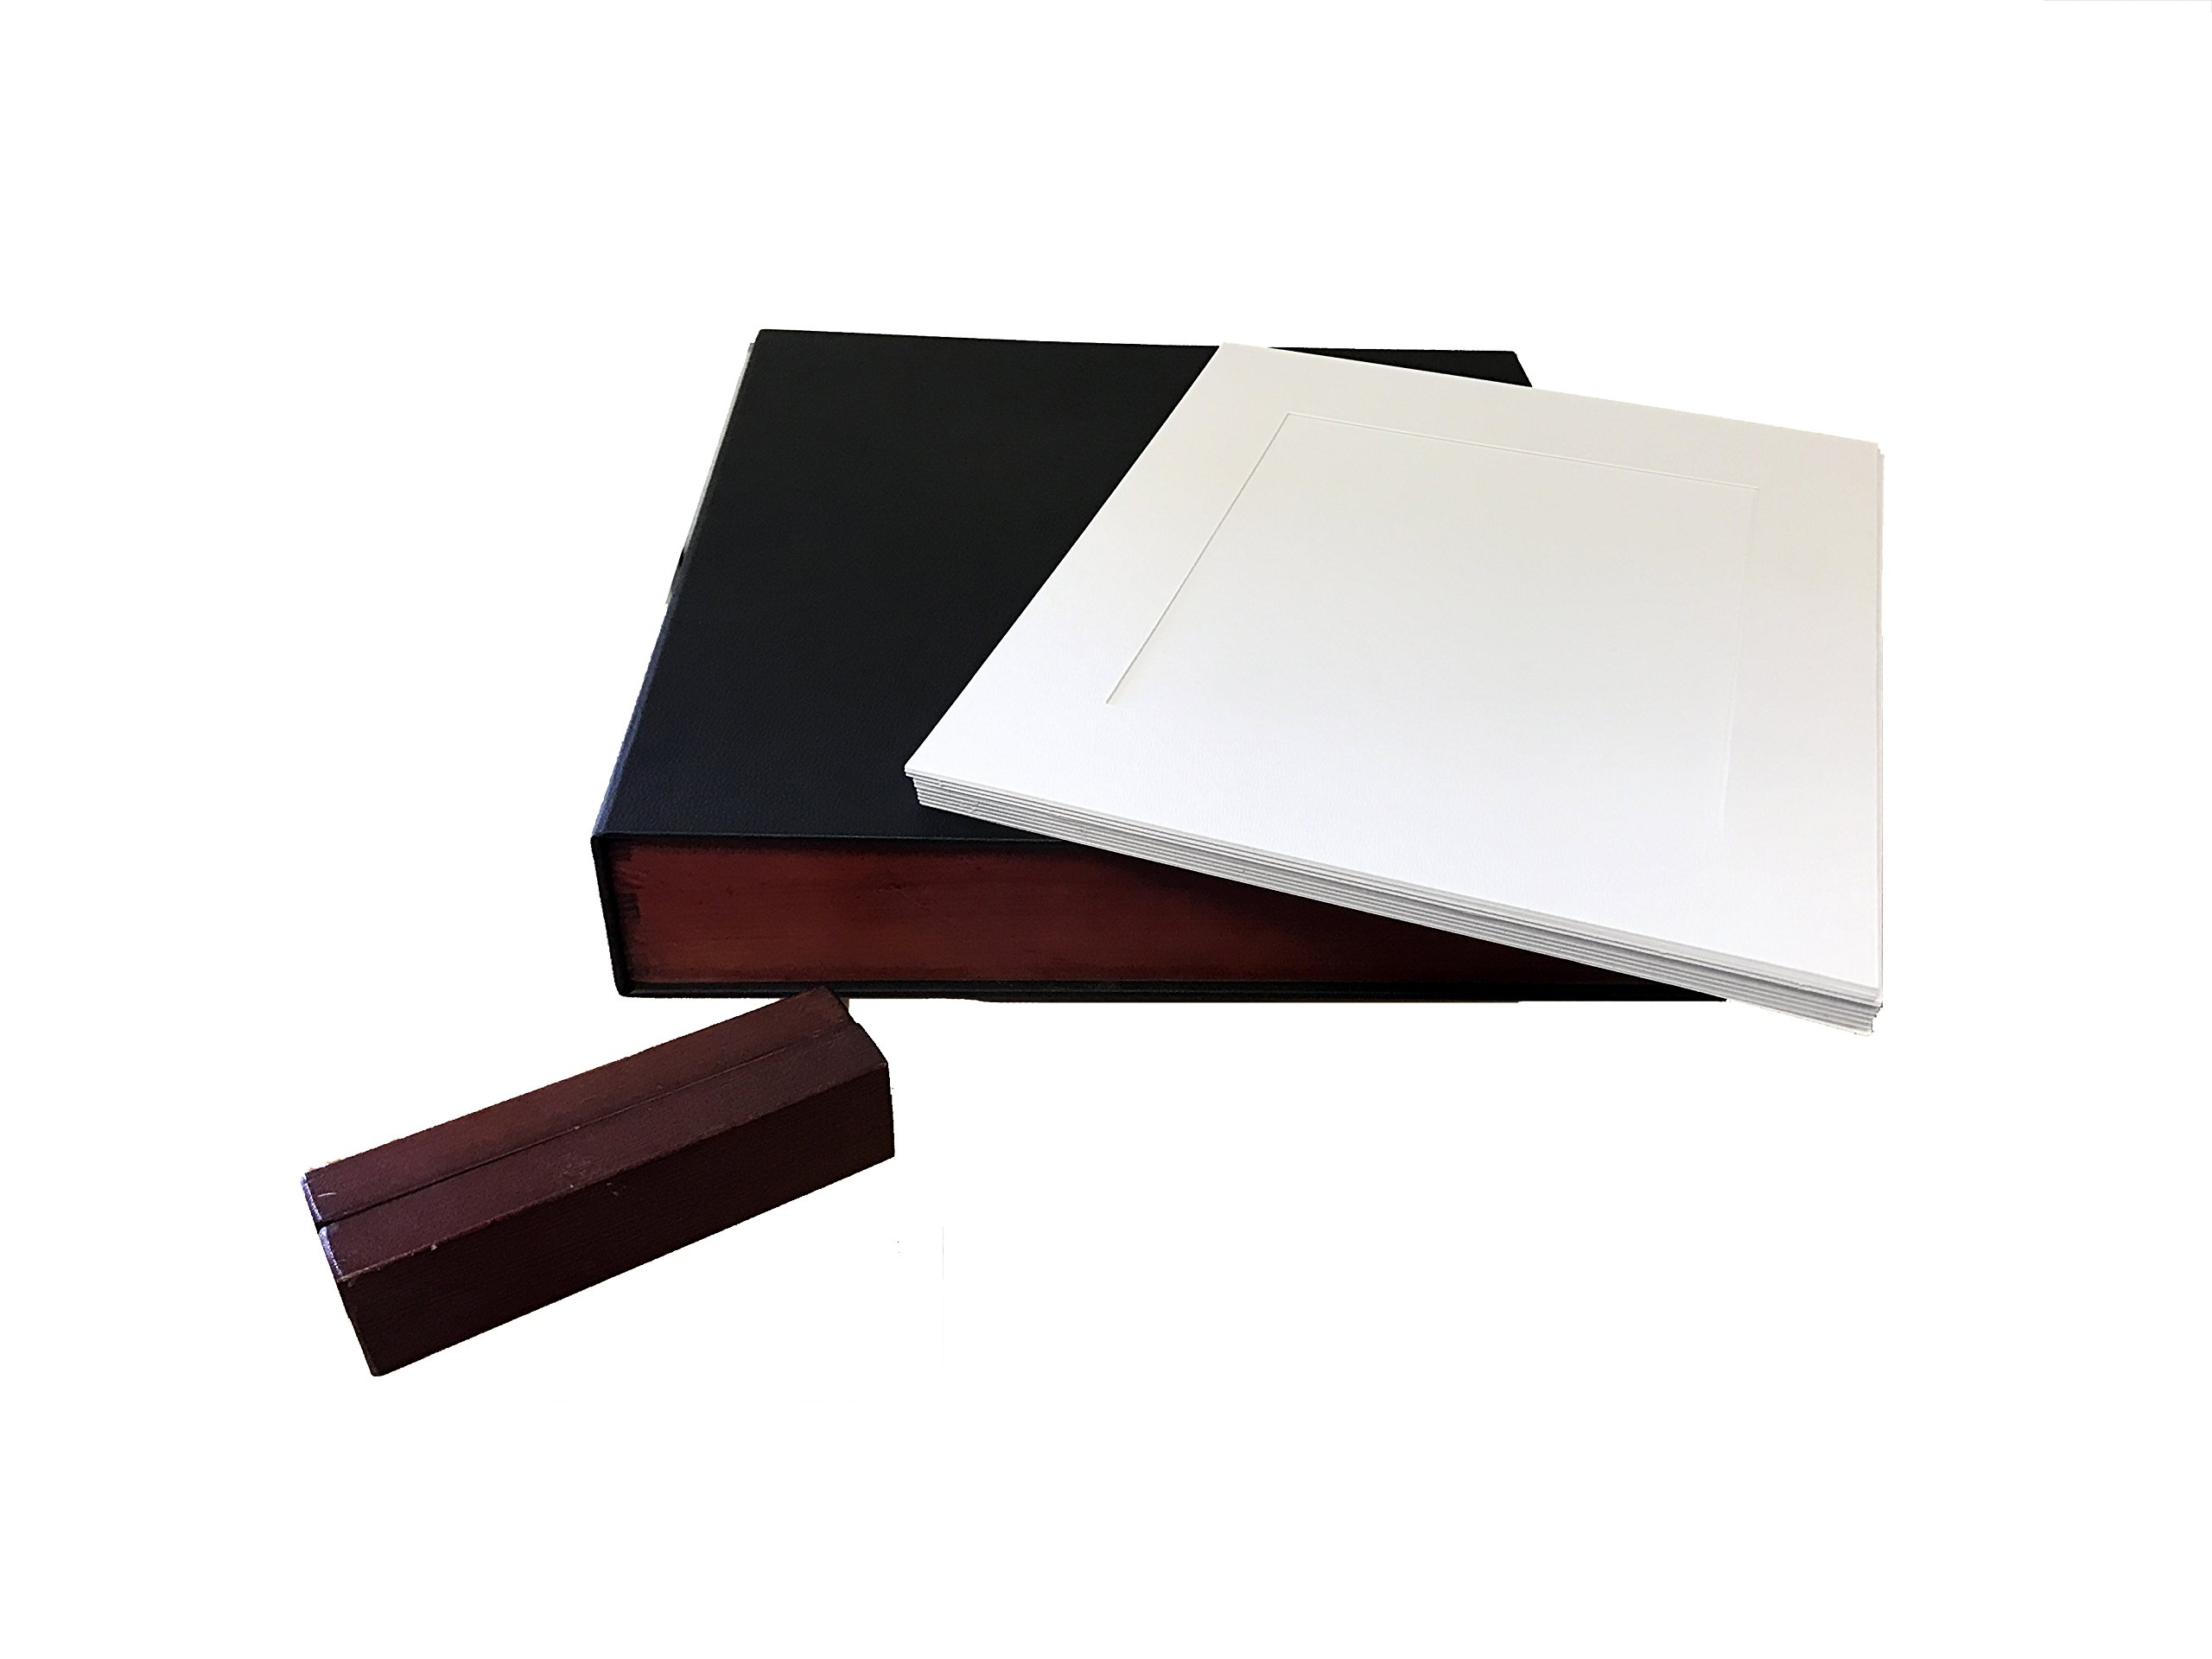 Showoff Albums Compartment Photo Box with 20 Premium White Photo Mats 11X14 Size for 8X10 Prints (Black with Wood Side Trim)